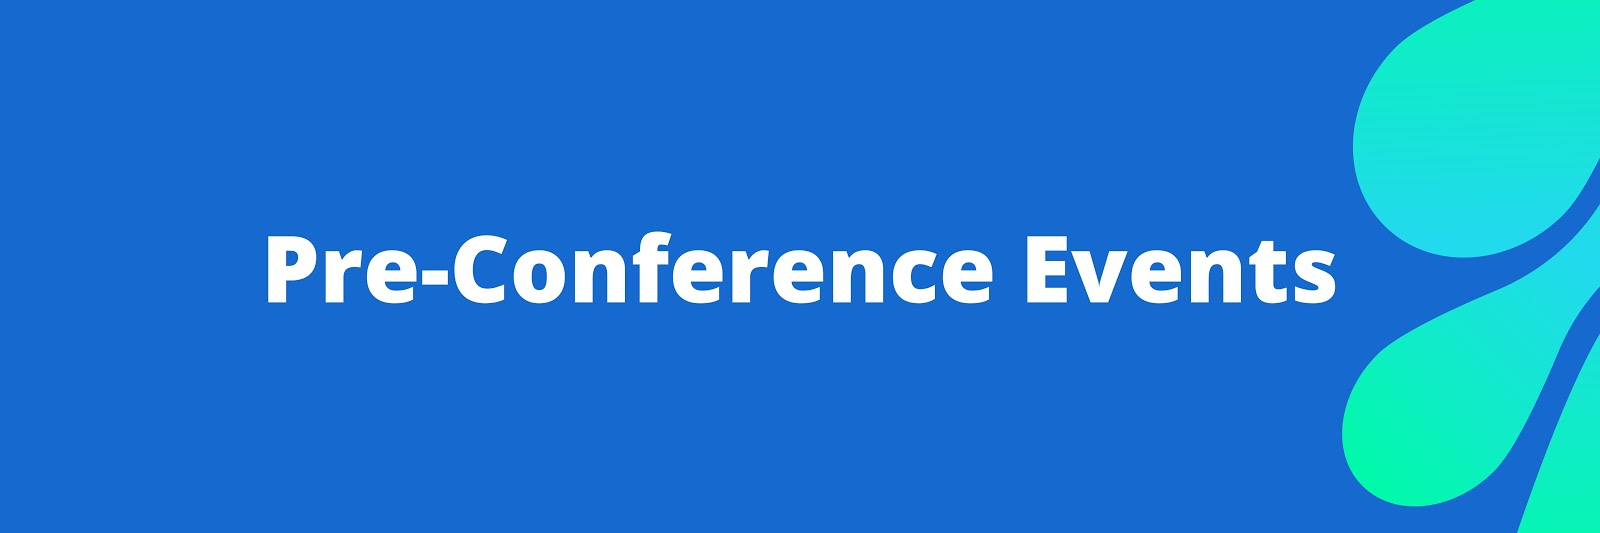 Pre-Conference Events